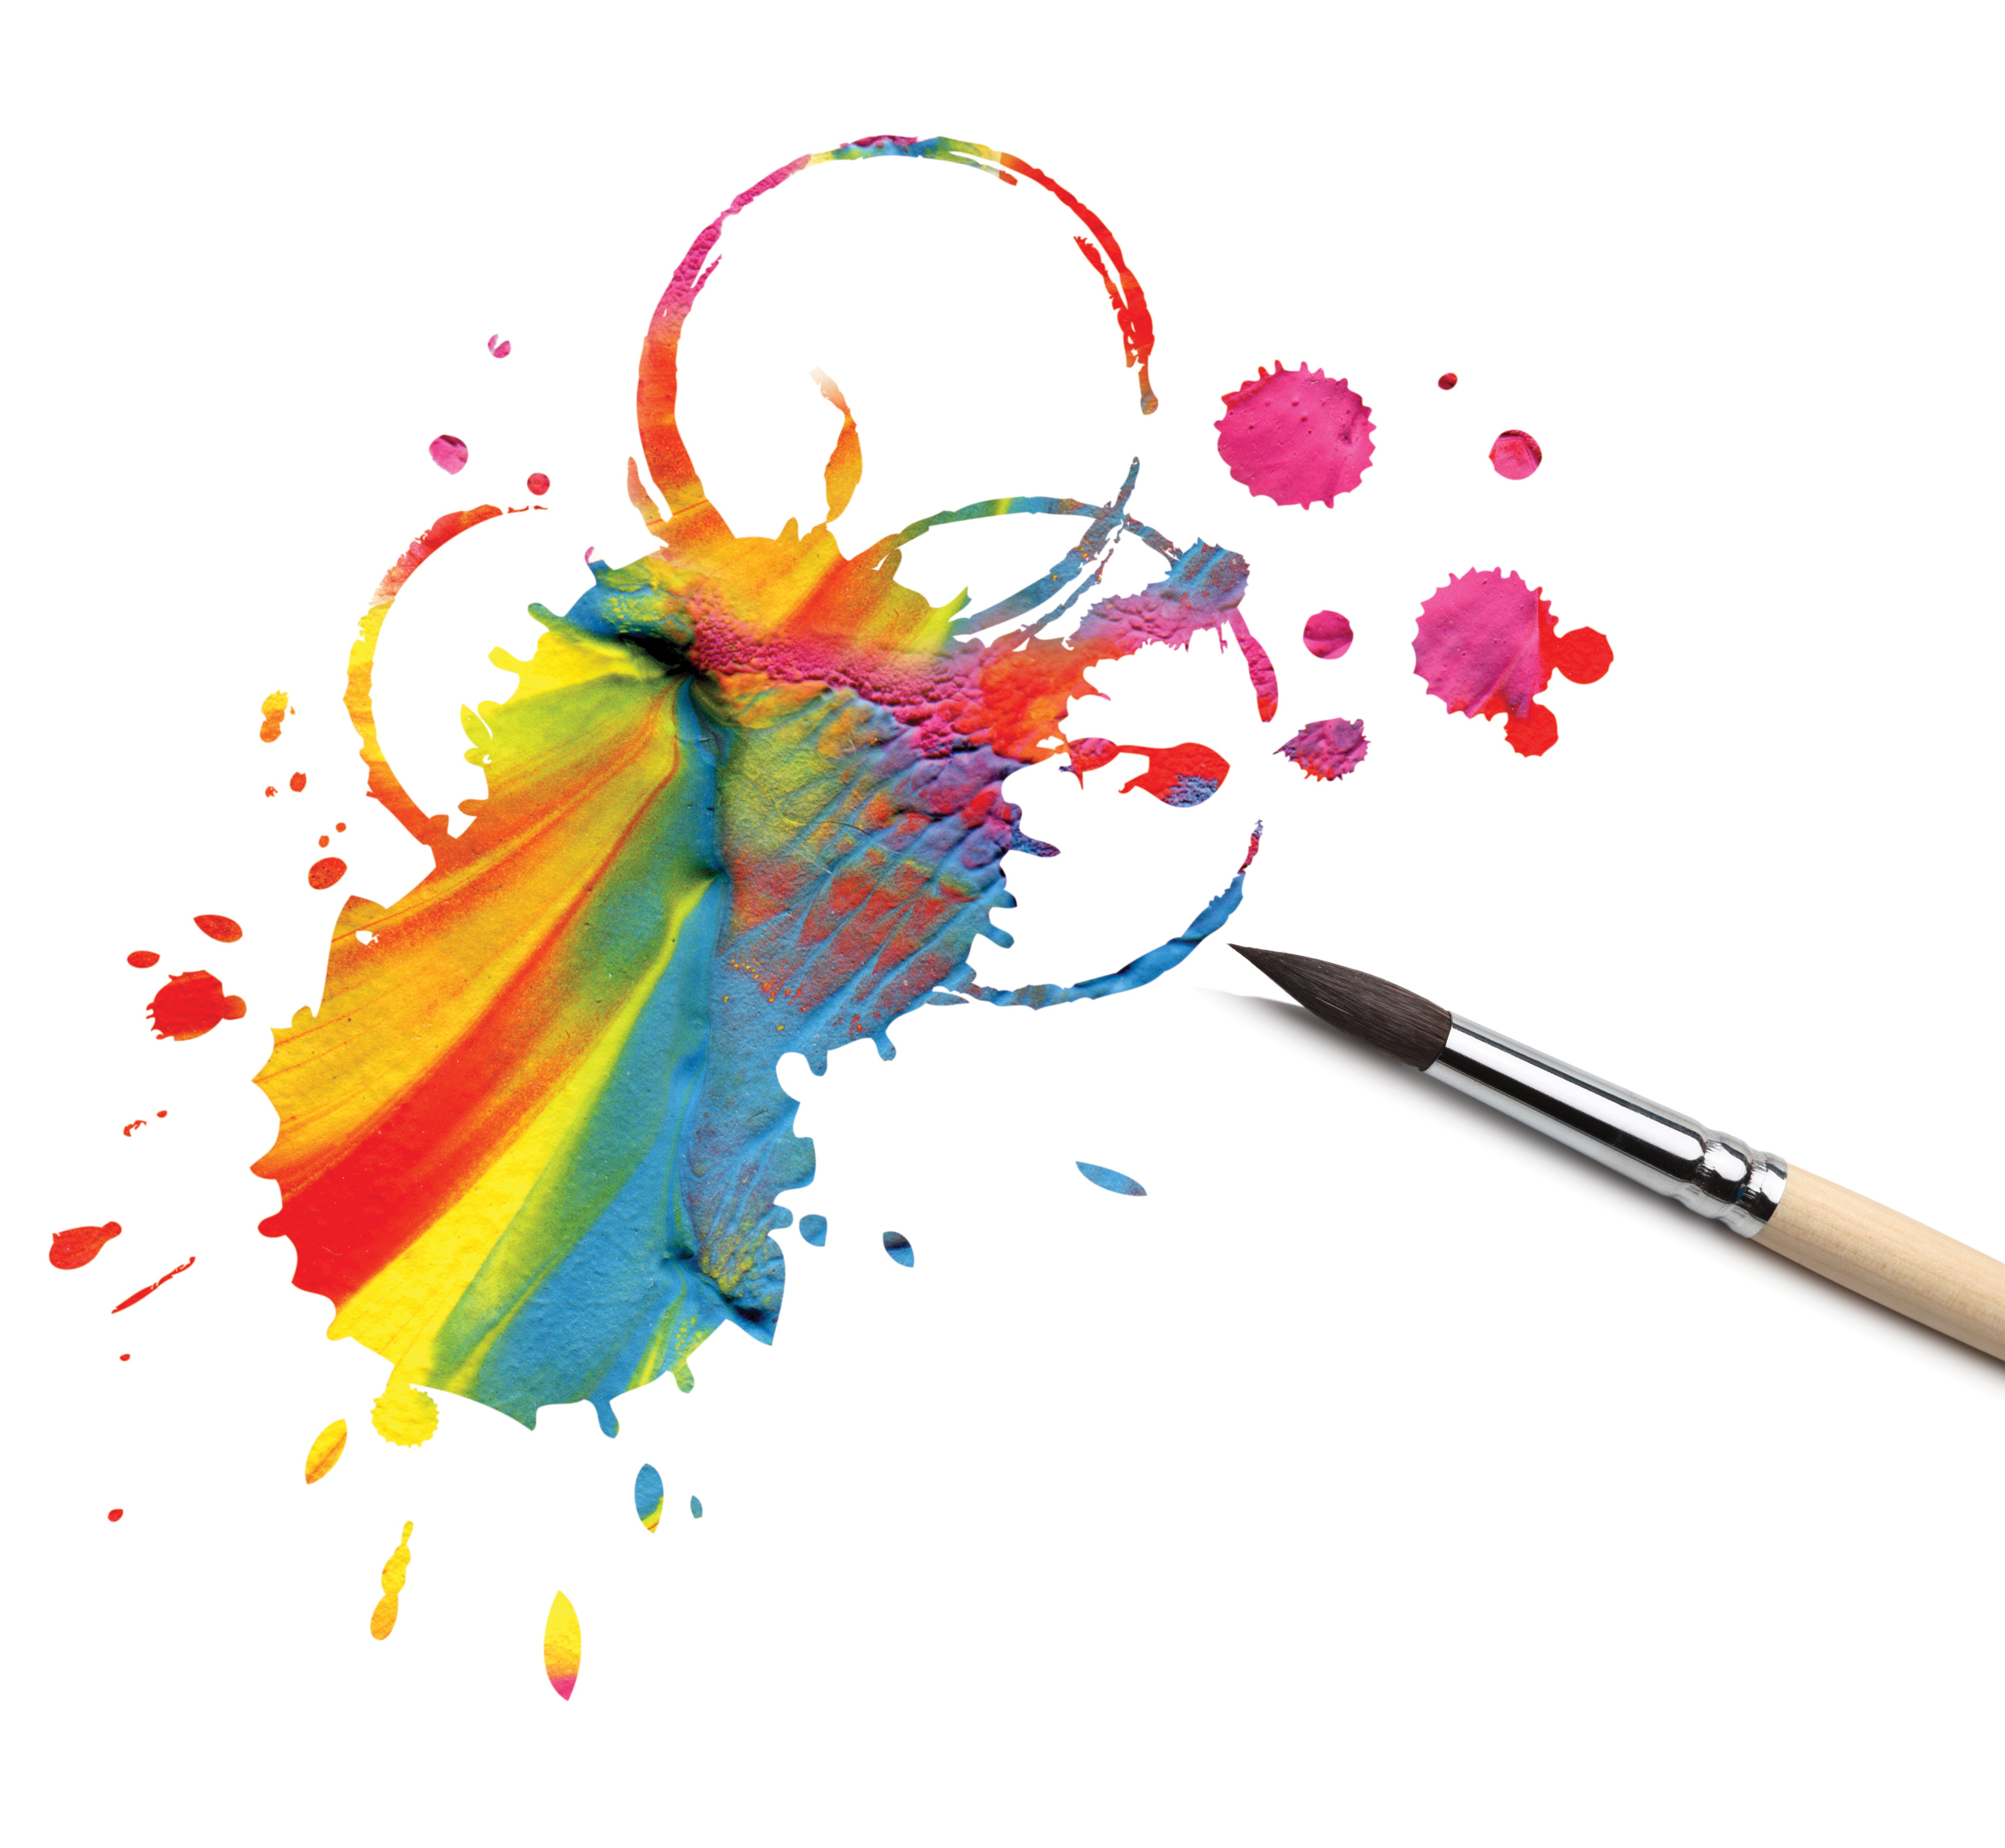 Painting Of Art Brushes